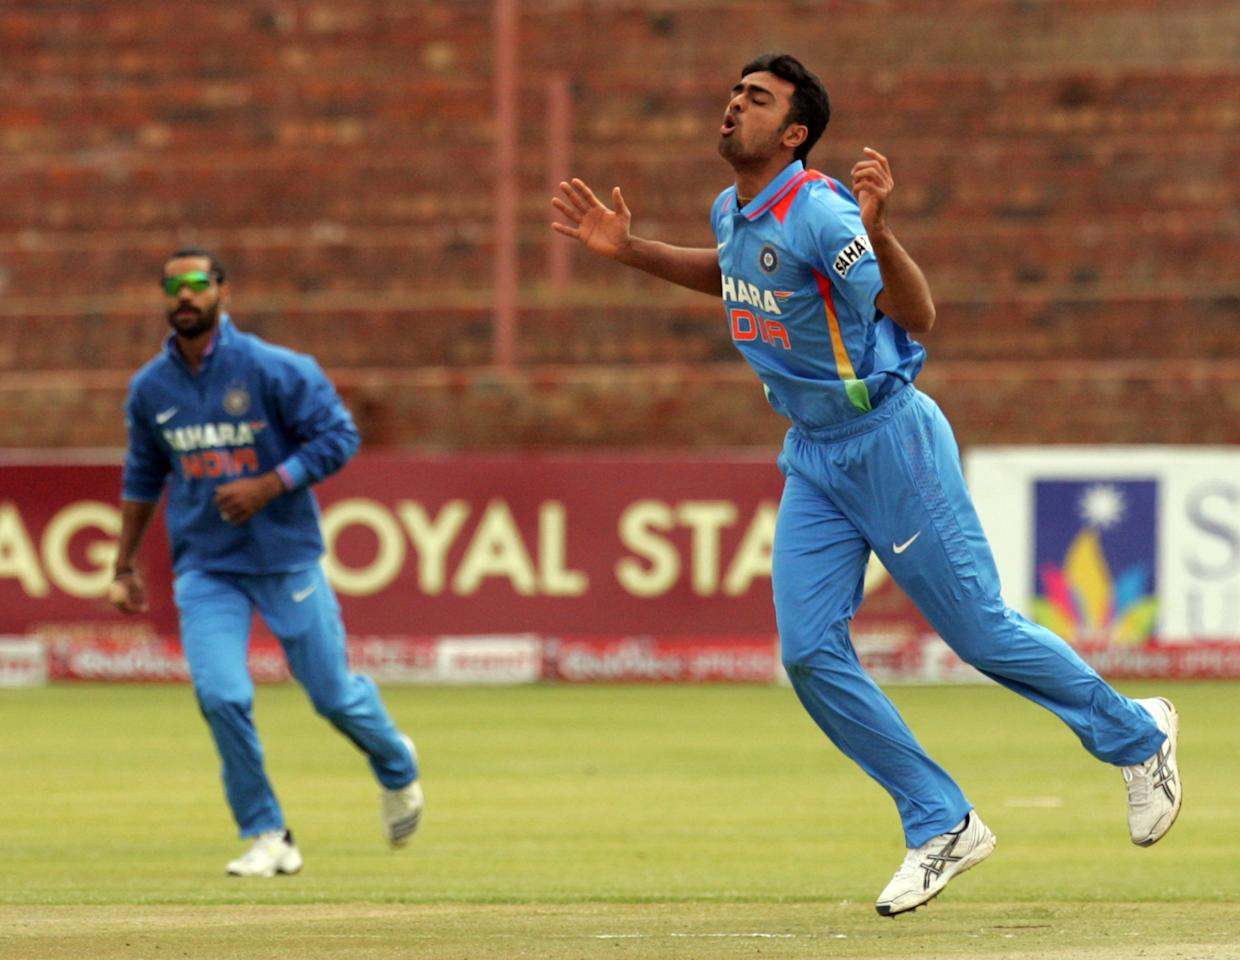 Indian bowler Jaidev Unadkat (R) reacts during the final game of the 5 match cricket ODI series between Zimbabwe and India at the Queens Sports Club in Harare, on August 3, 2013. AFP PHOTO / JEKESAI NJIKIZANA        (Photo credit should read JEKESAI NJIKIZANA/AFP/Getty Images)